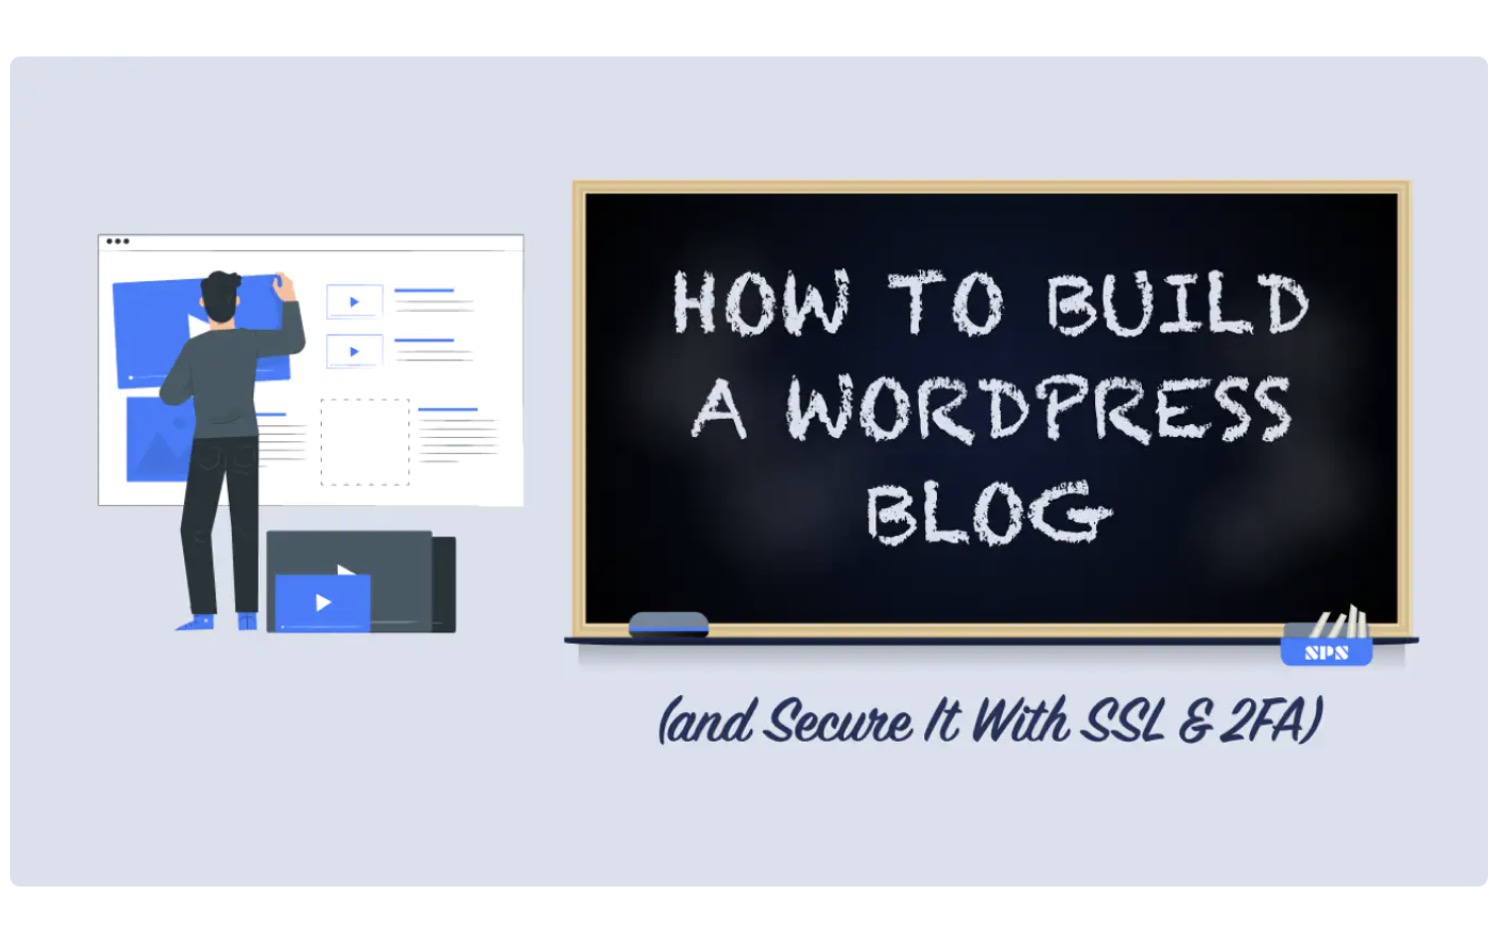 How to Build a WordPress Blog